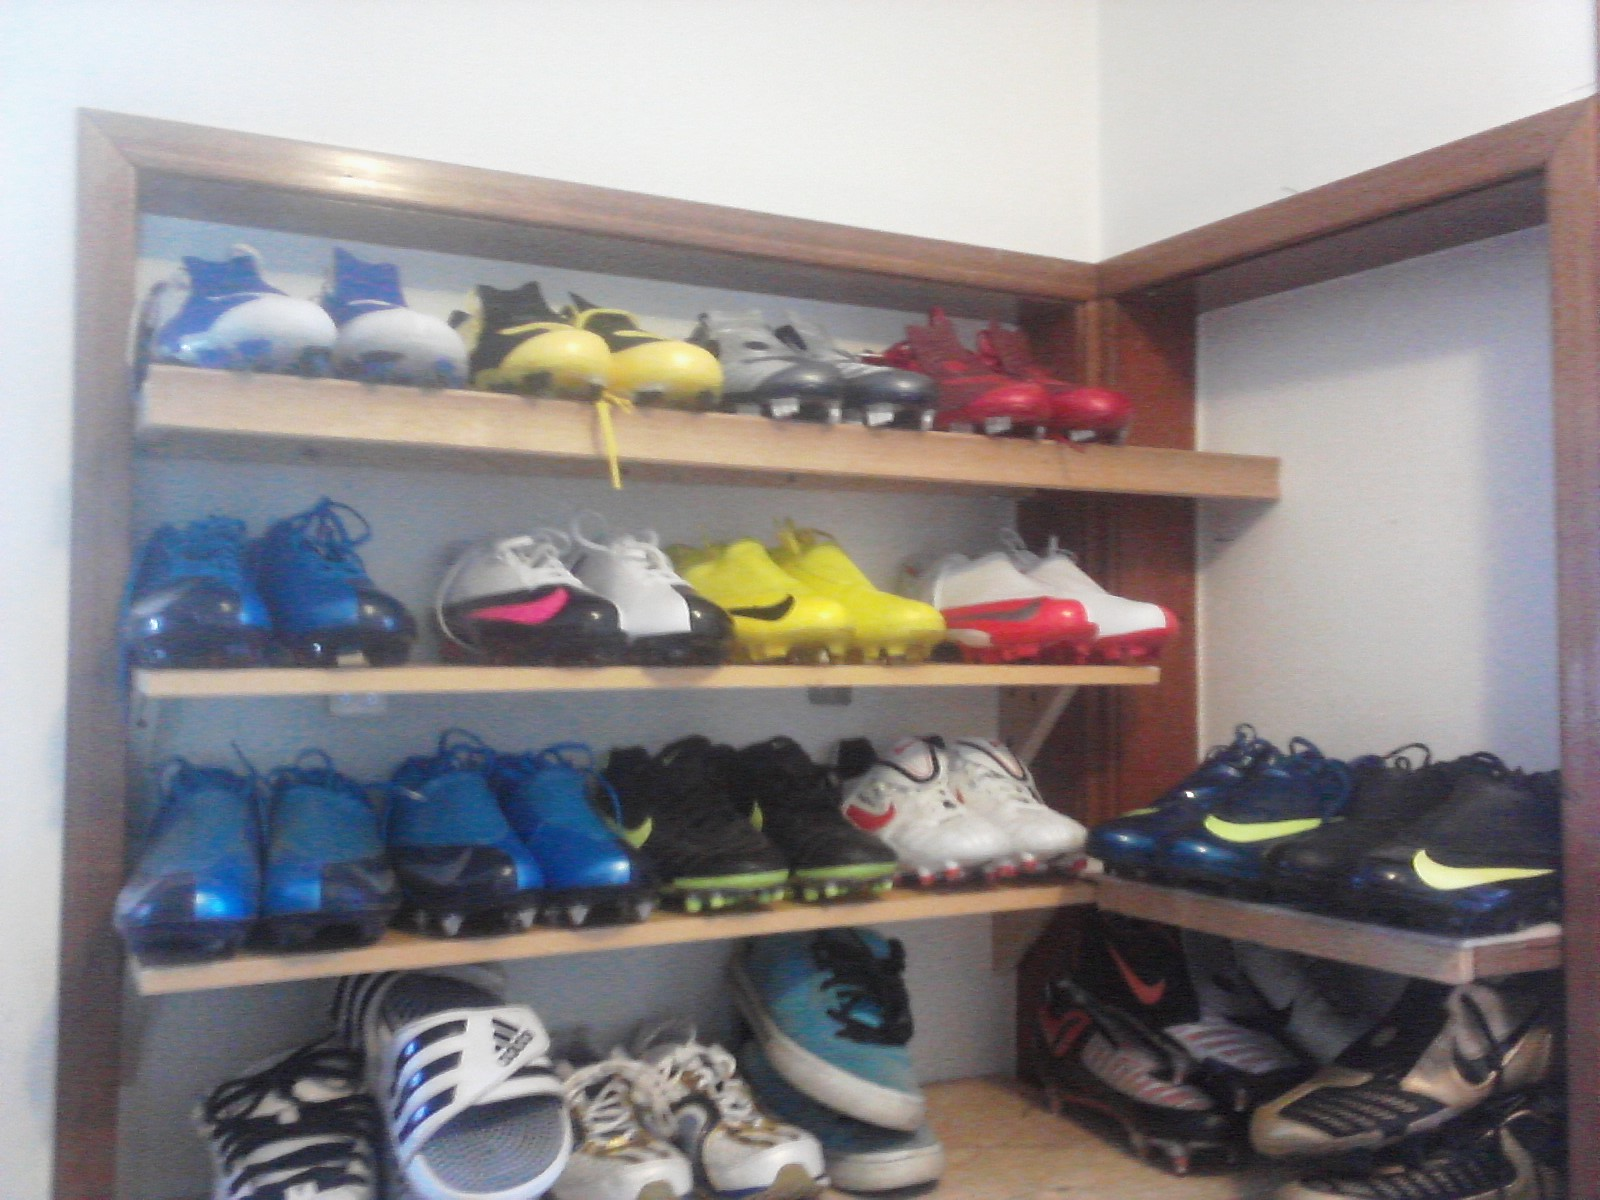 Partial cleat collection